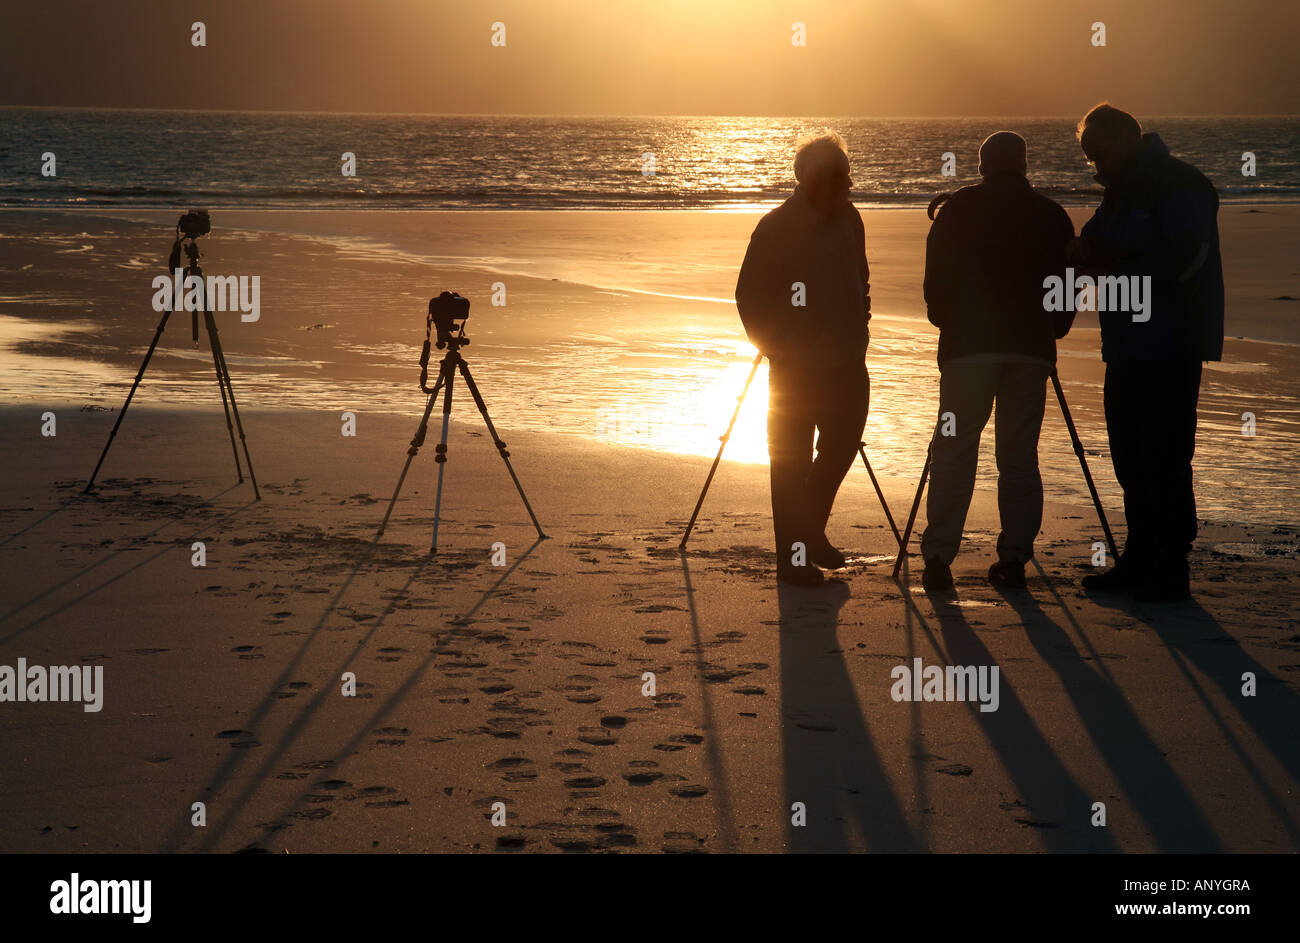 a-group-of-photographers-silhouetted-against-the-sunset-laig-bay-isle-ANYGRA.jpg